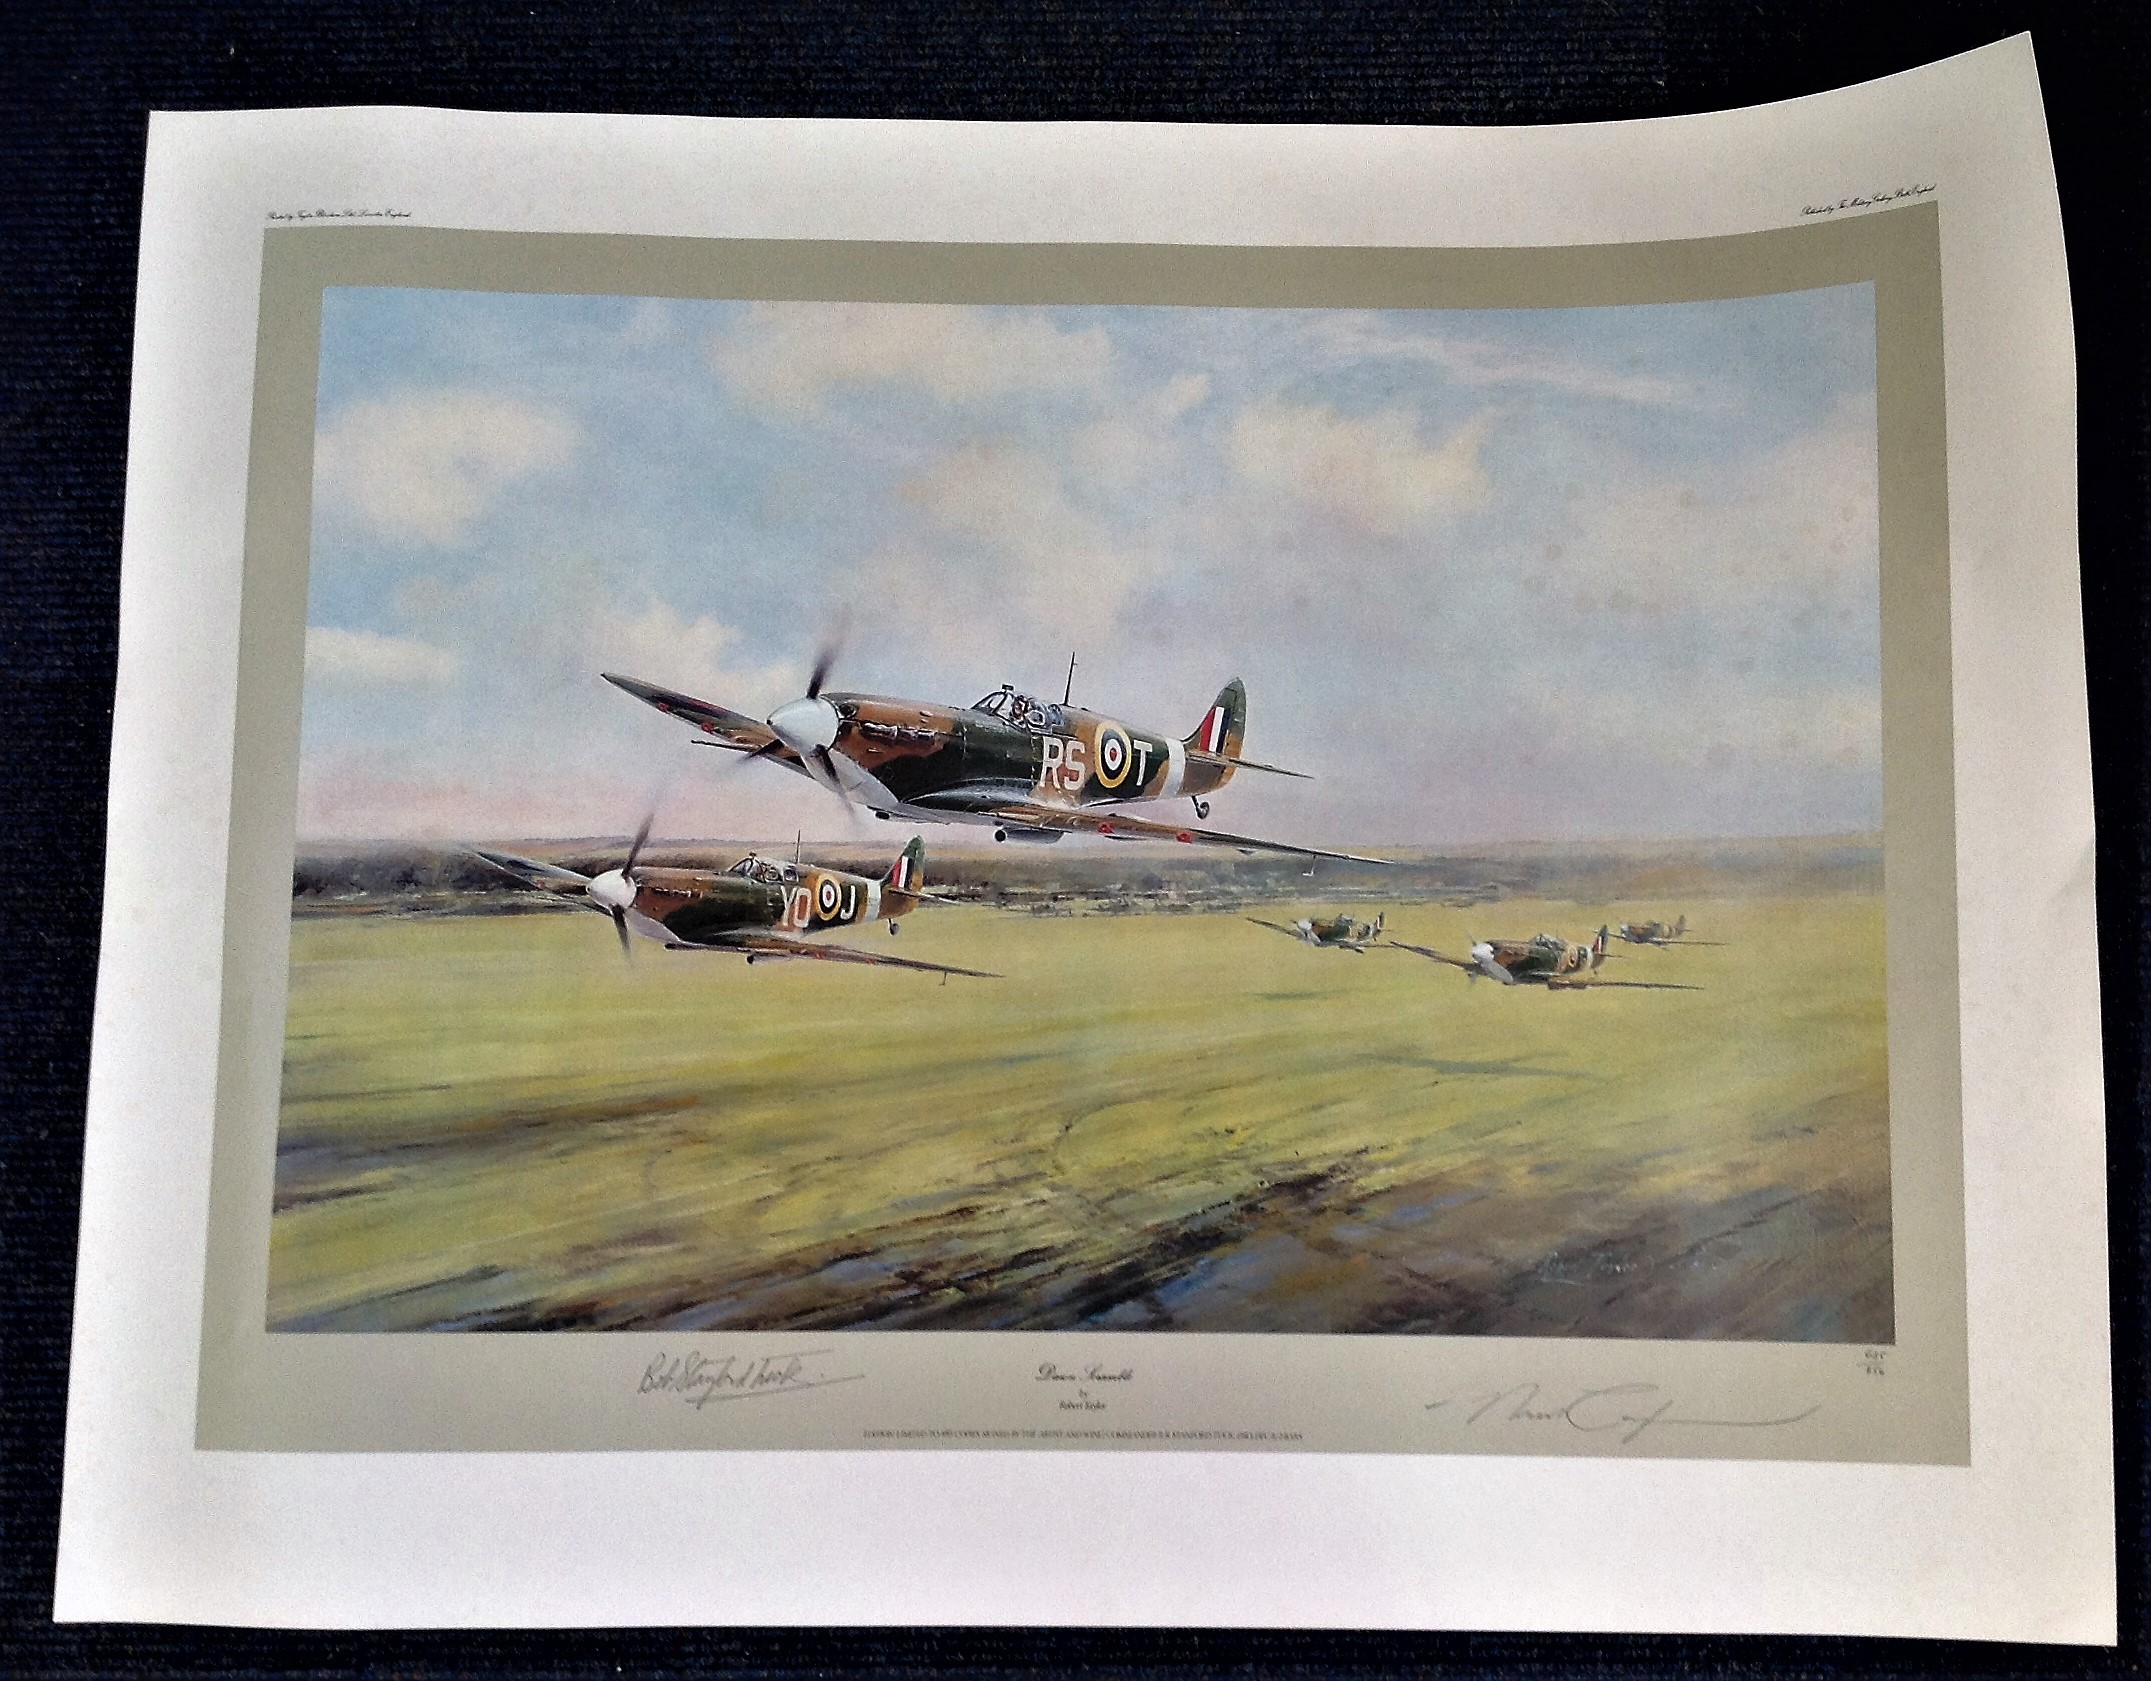 Robert Taylor Dawn Scramble 23x30 limited edition print 685 850 signed by Bob Stanford Tuck with